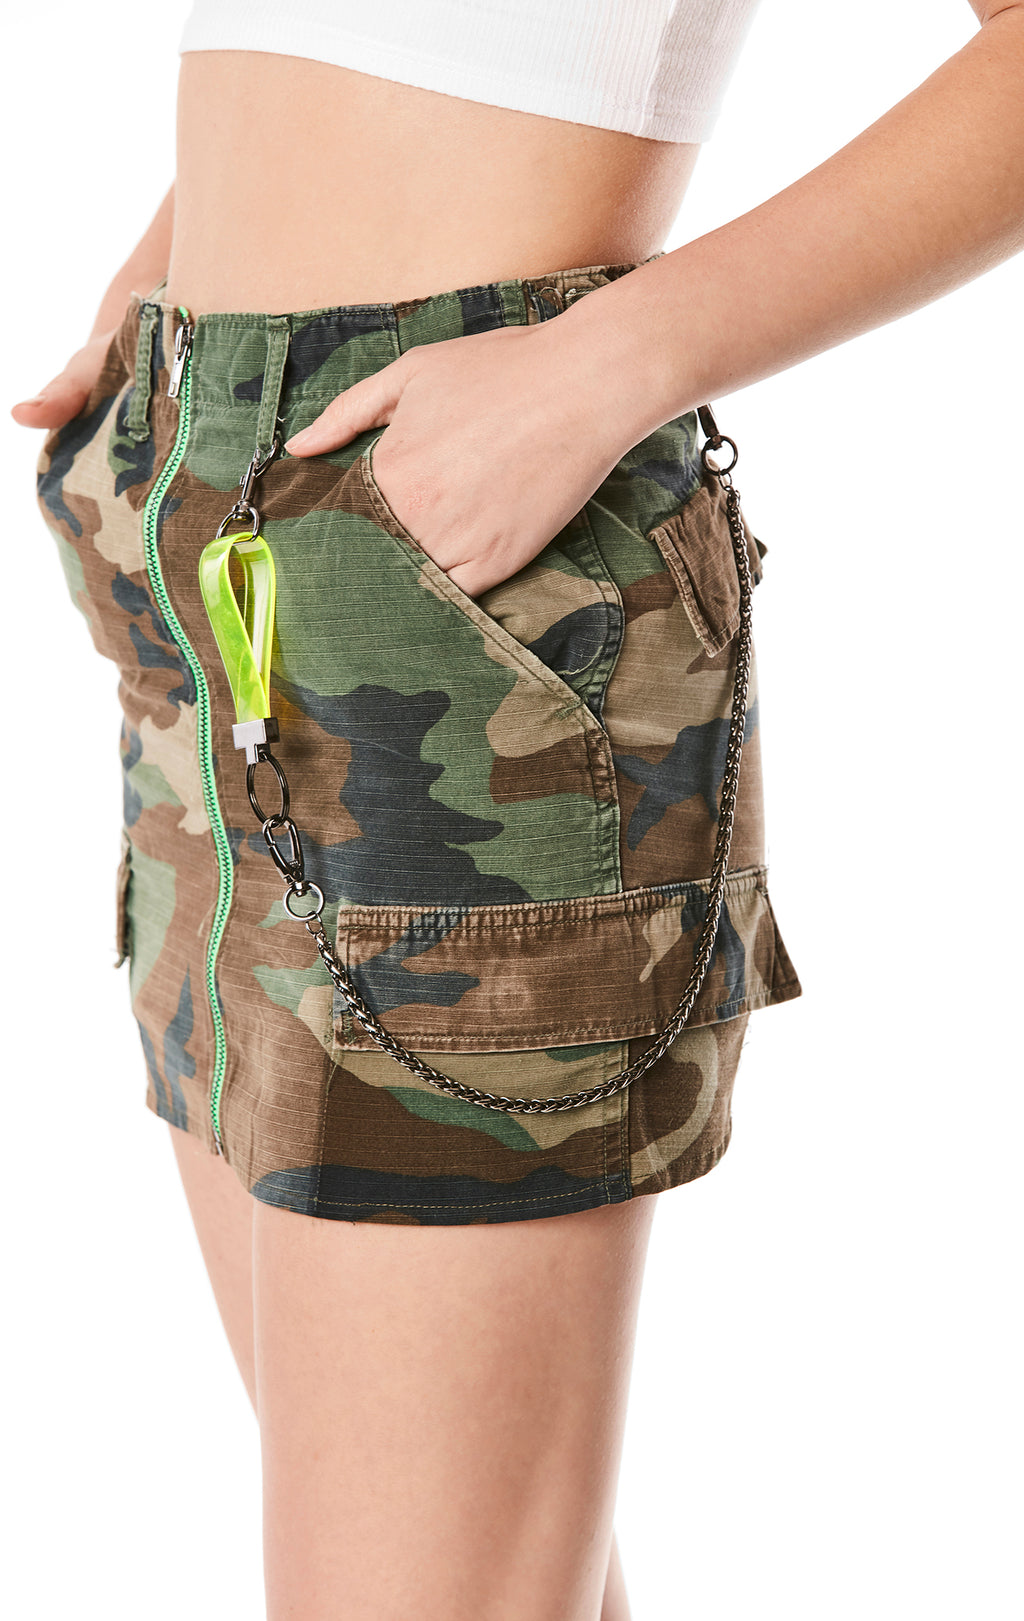 NEON ZIP FRONT CAMO SKIRT WITH VINYL HARNESS AND CHAIN